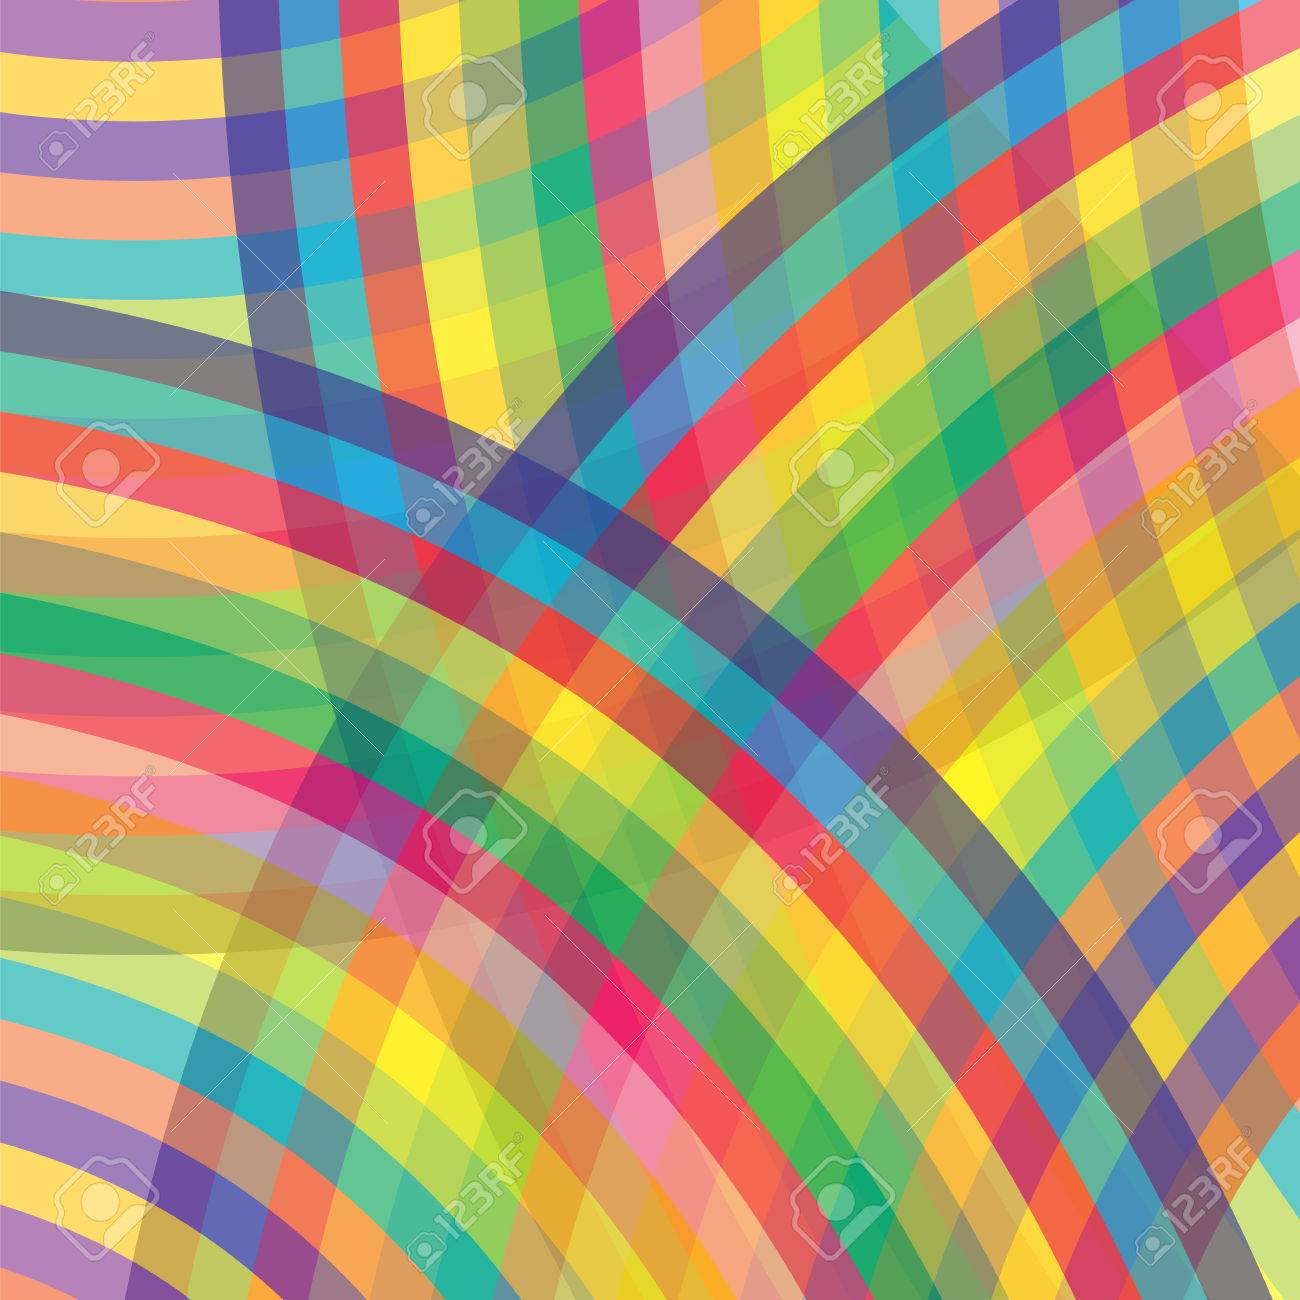 Abstract Colorful Line Background Abstract Rainbow Pattern Royalty Free Cliparts Vectors And Stock Illustration Image 41307083